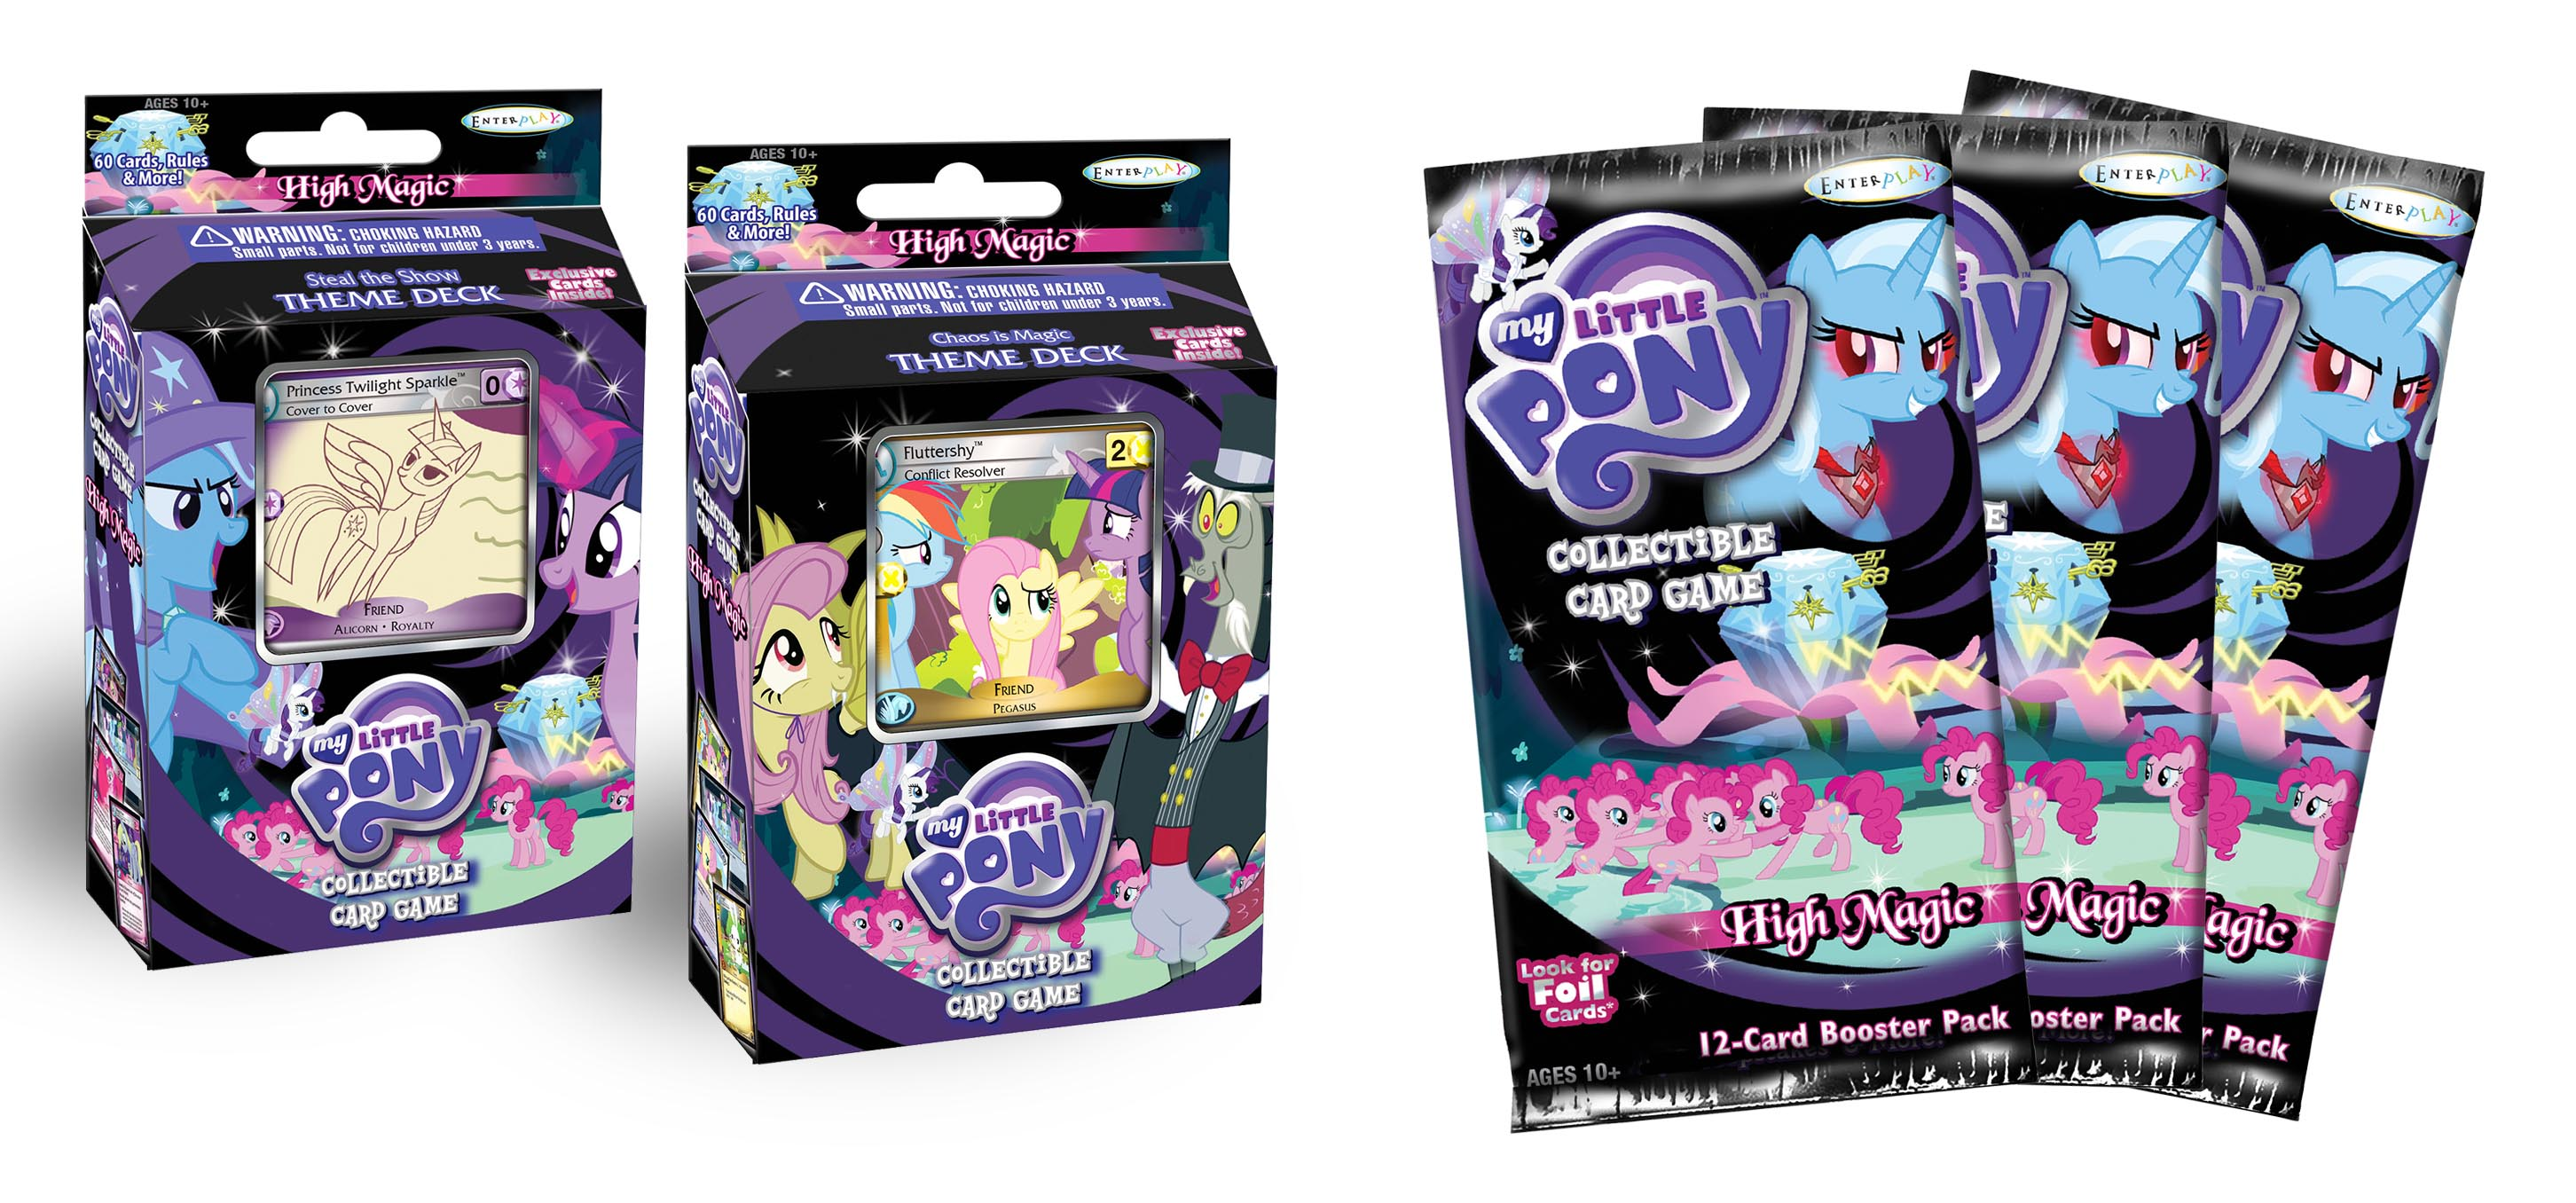 mlp_hm_product